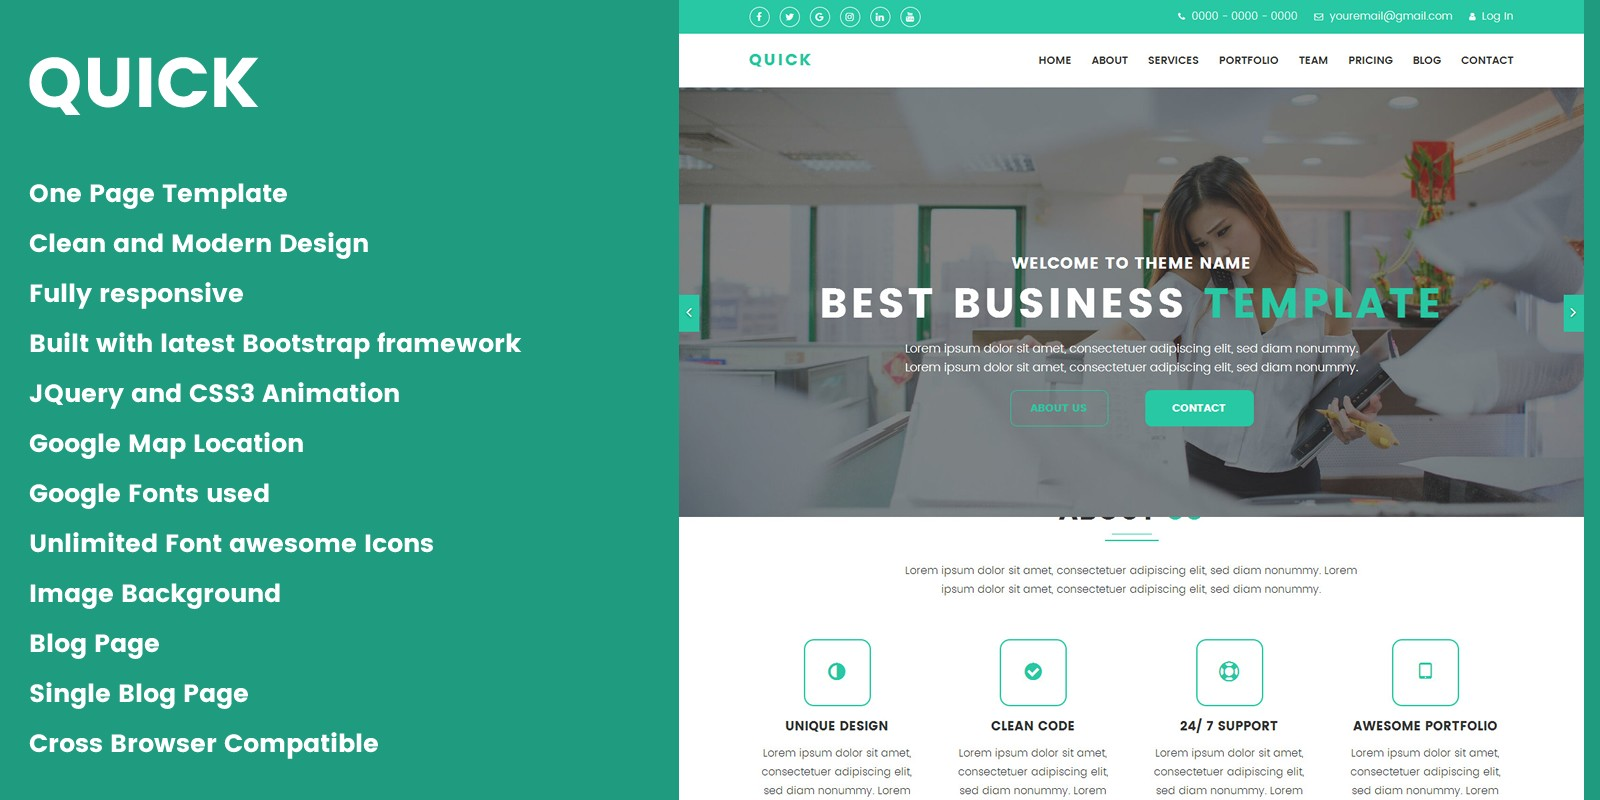 Quick - Creative Design Agency HTML Template